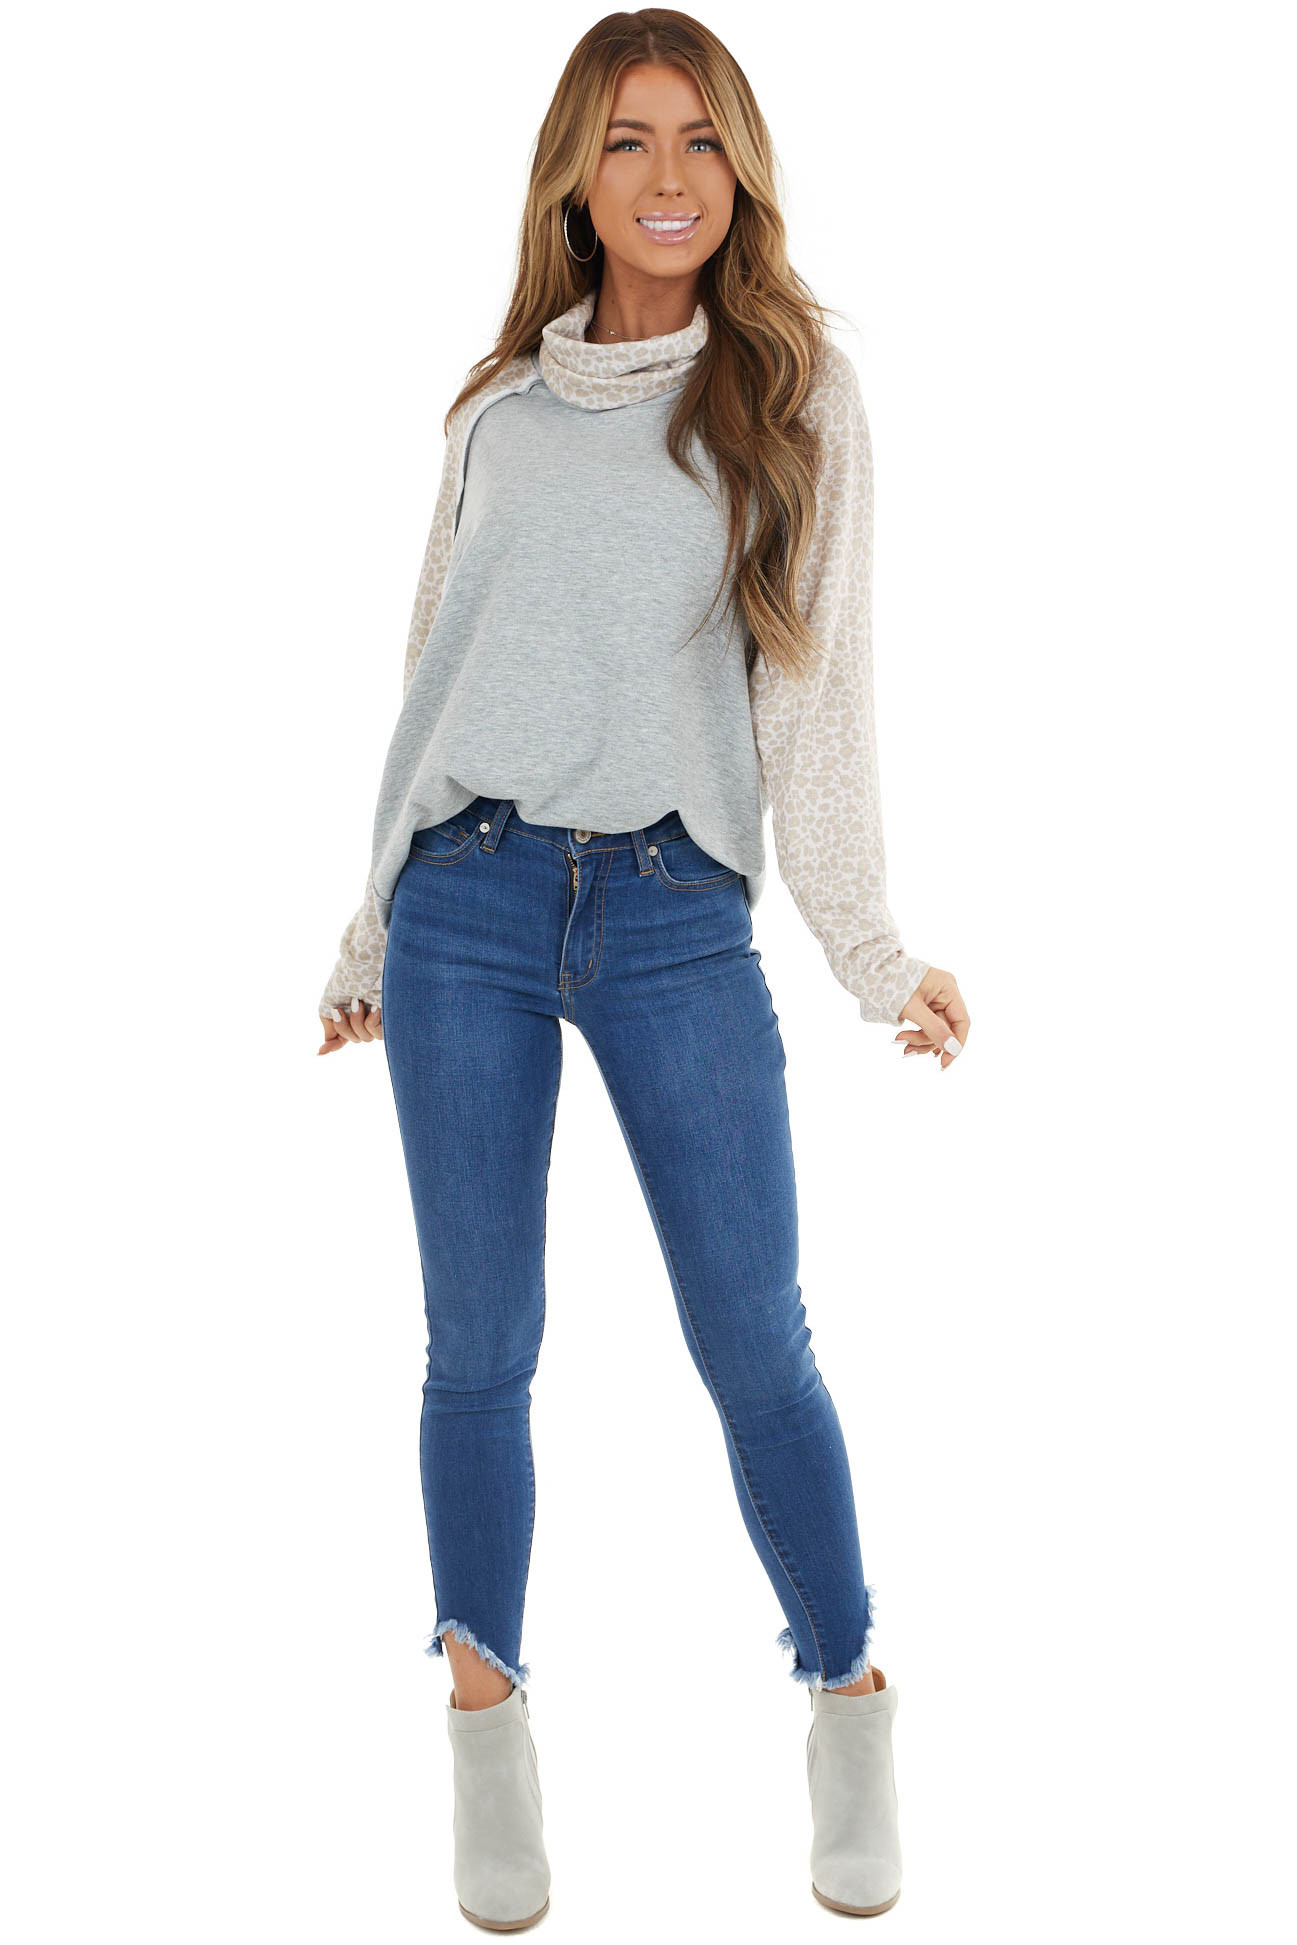 Heather Grey Raglan Top with Contrast Sleeves and Cowl Neck